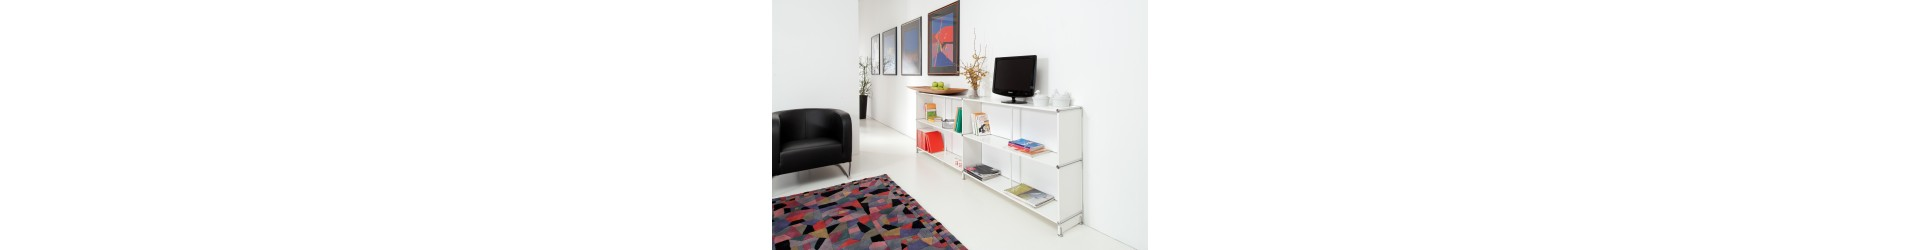 Furnishings, objects and Design